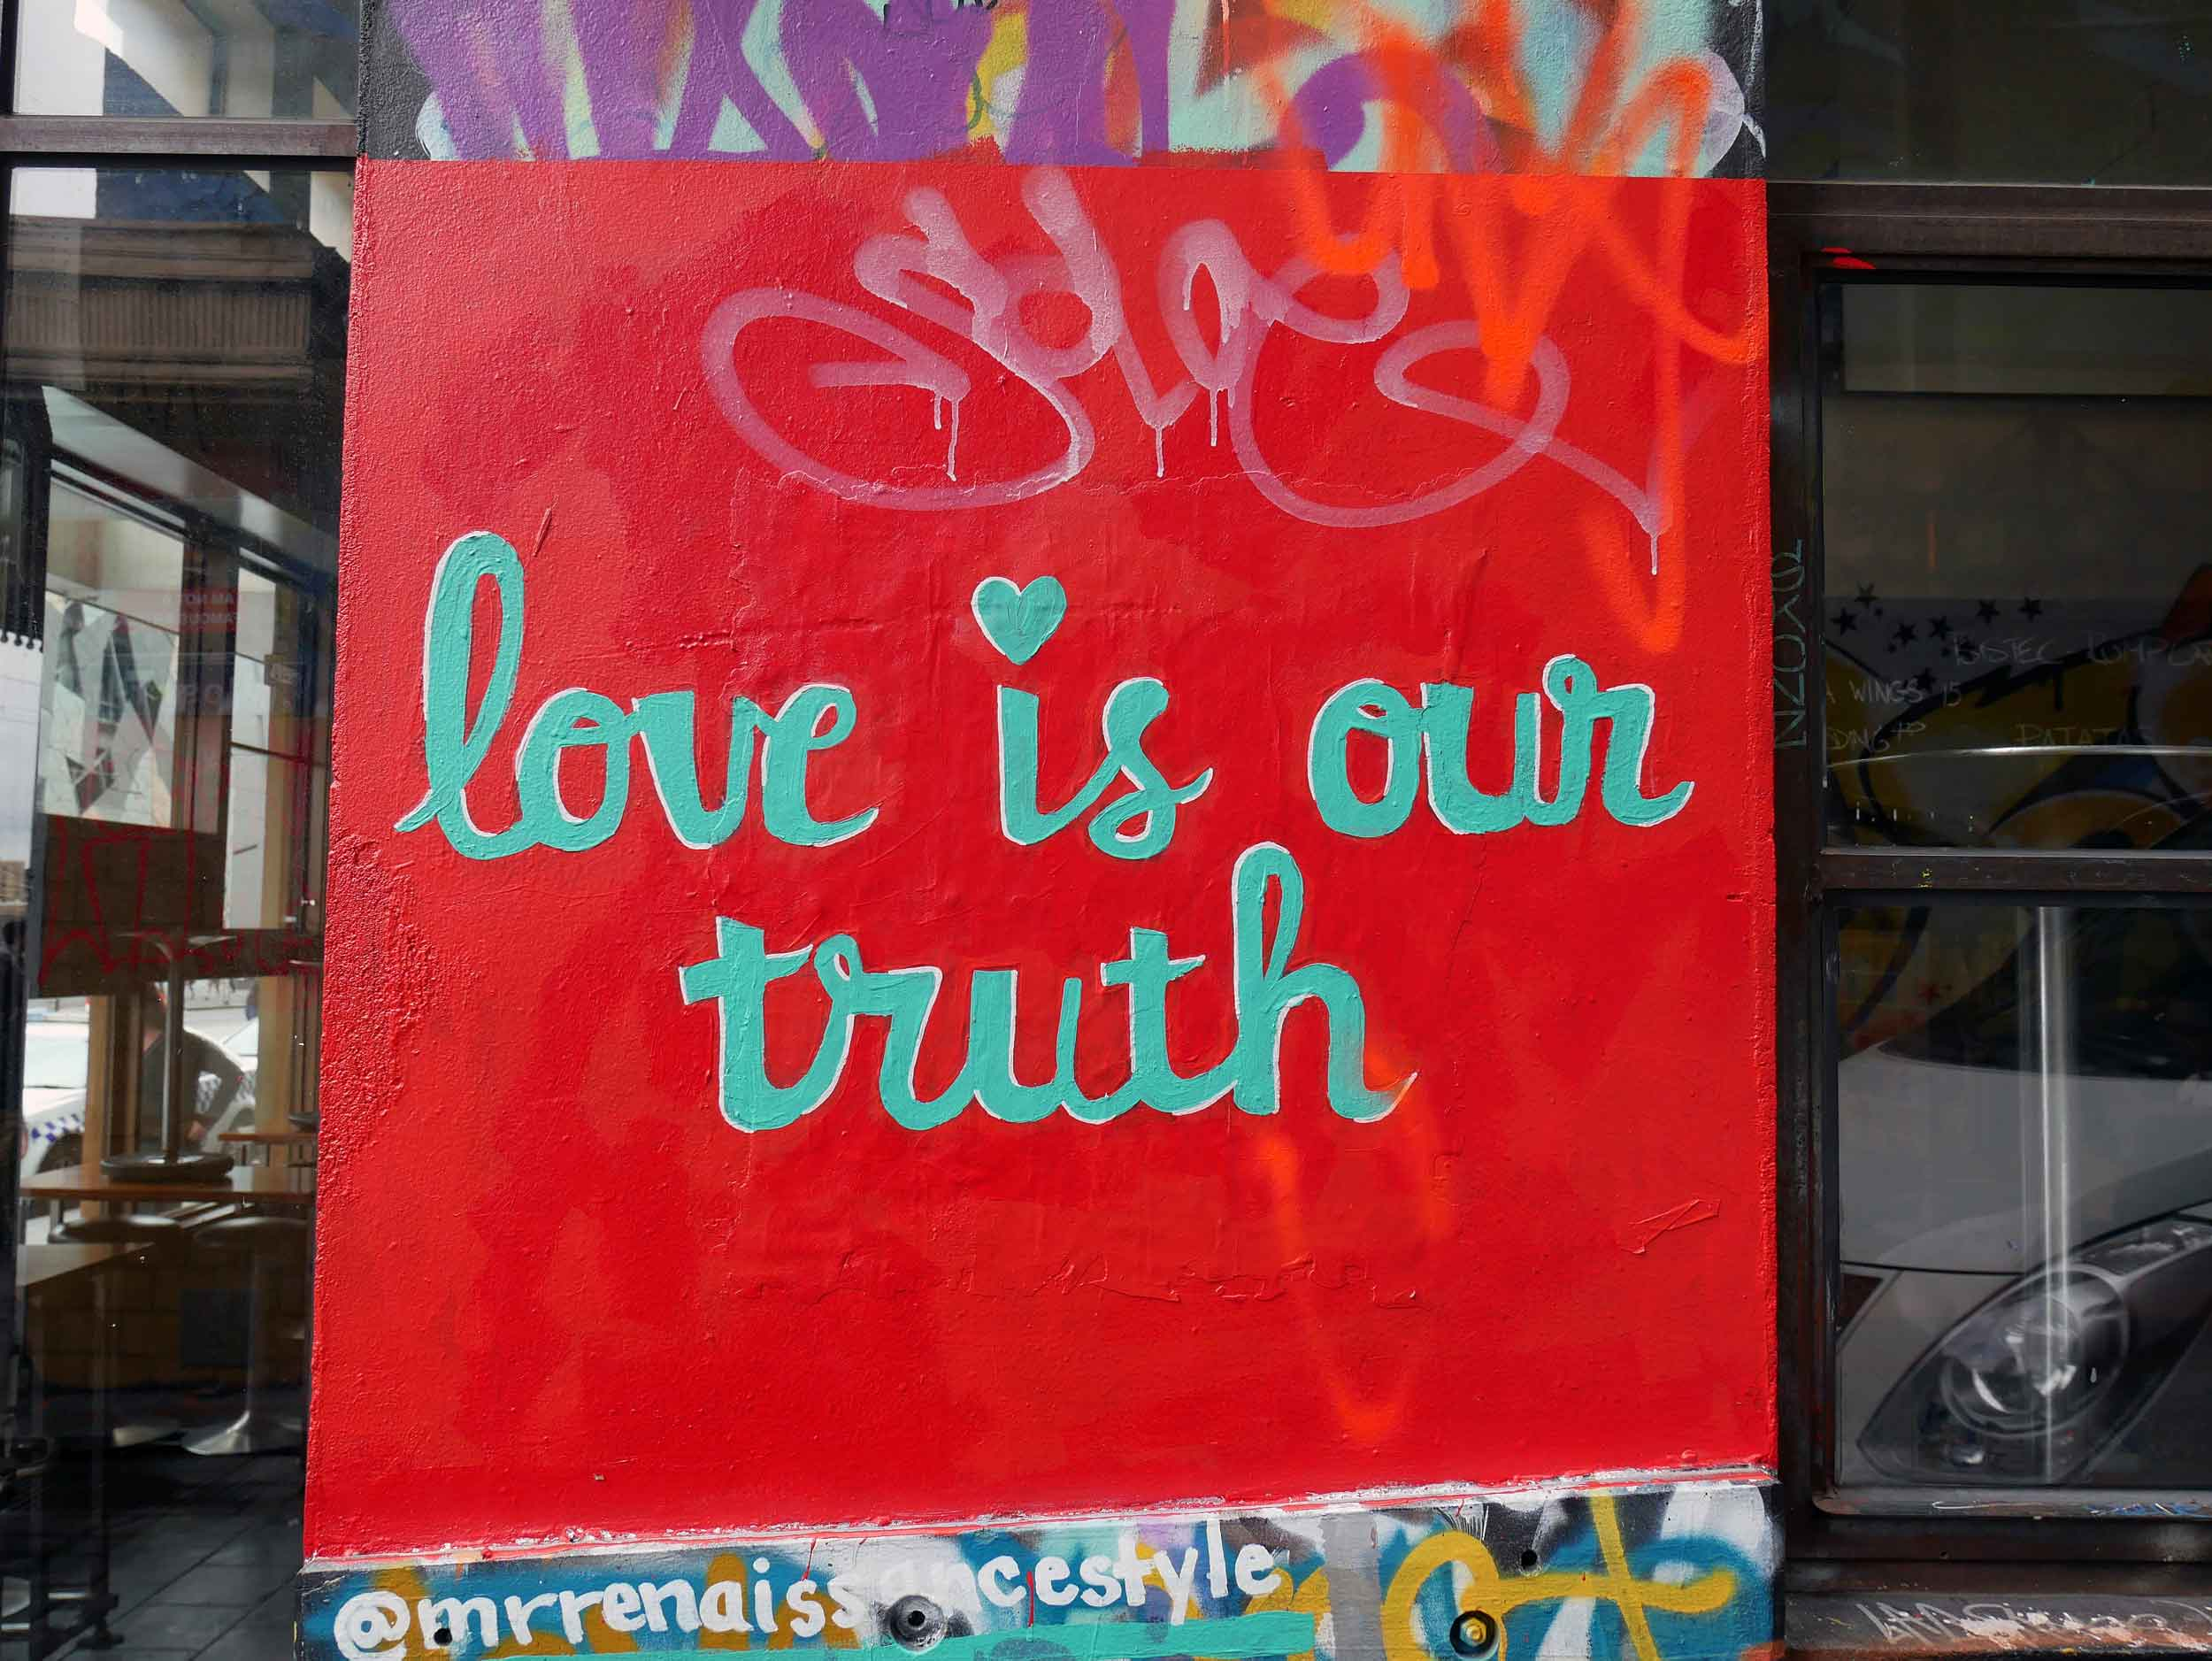 Another example of the colorful sayings and creative expressions found on Hoiser Lane (Jan 26).